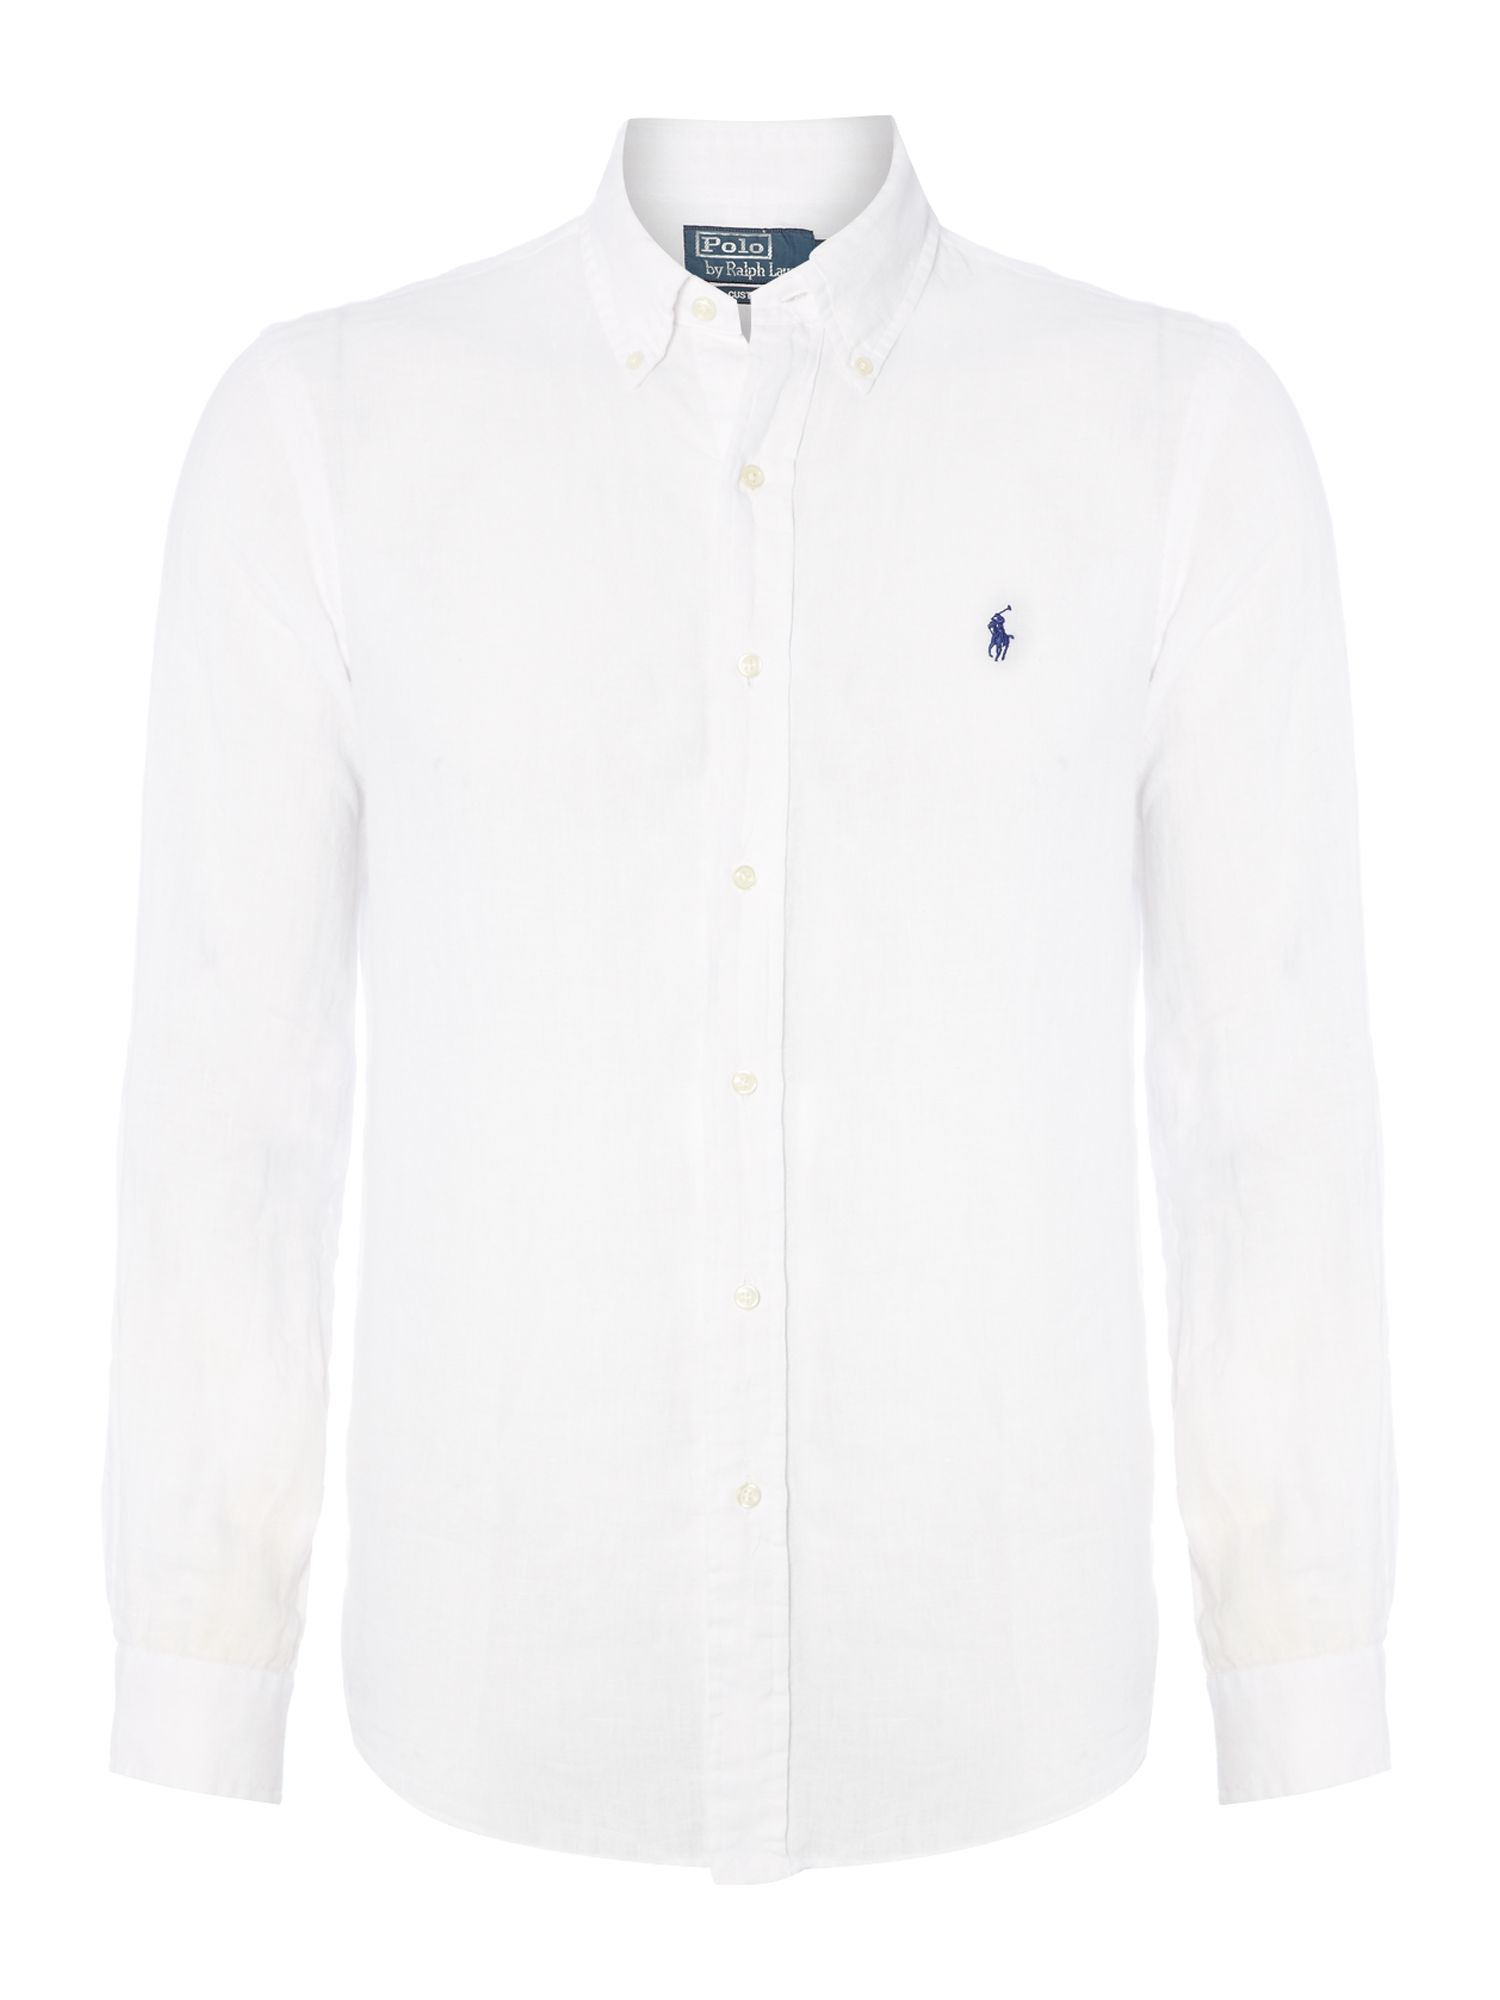 Classic long sleeve custom fit linen shirt